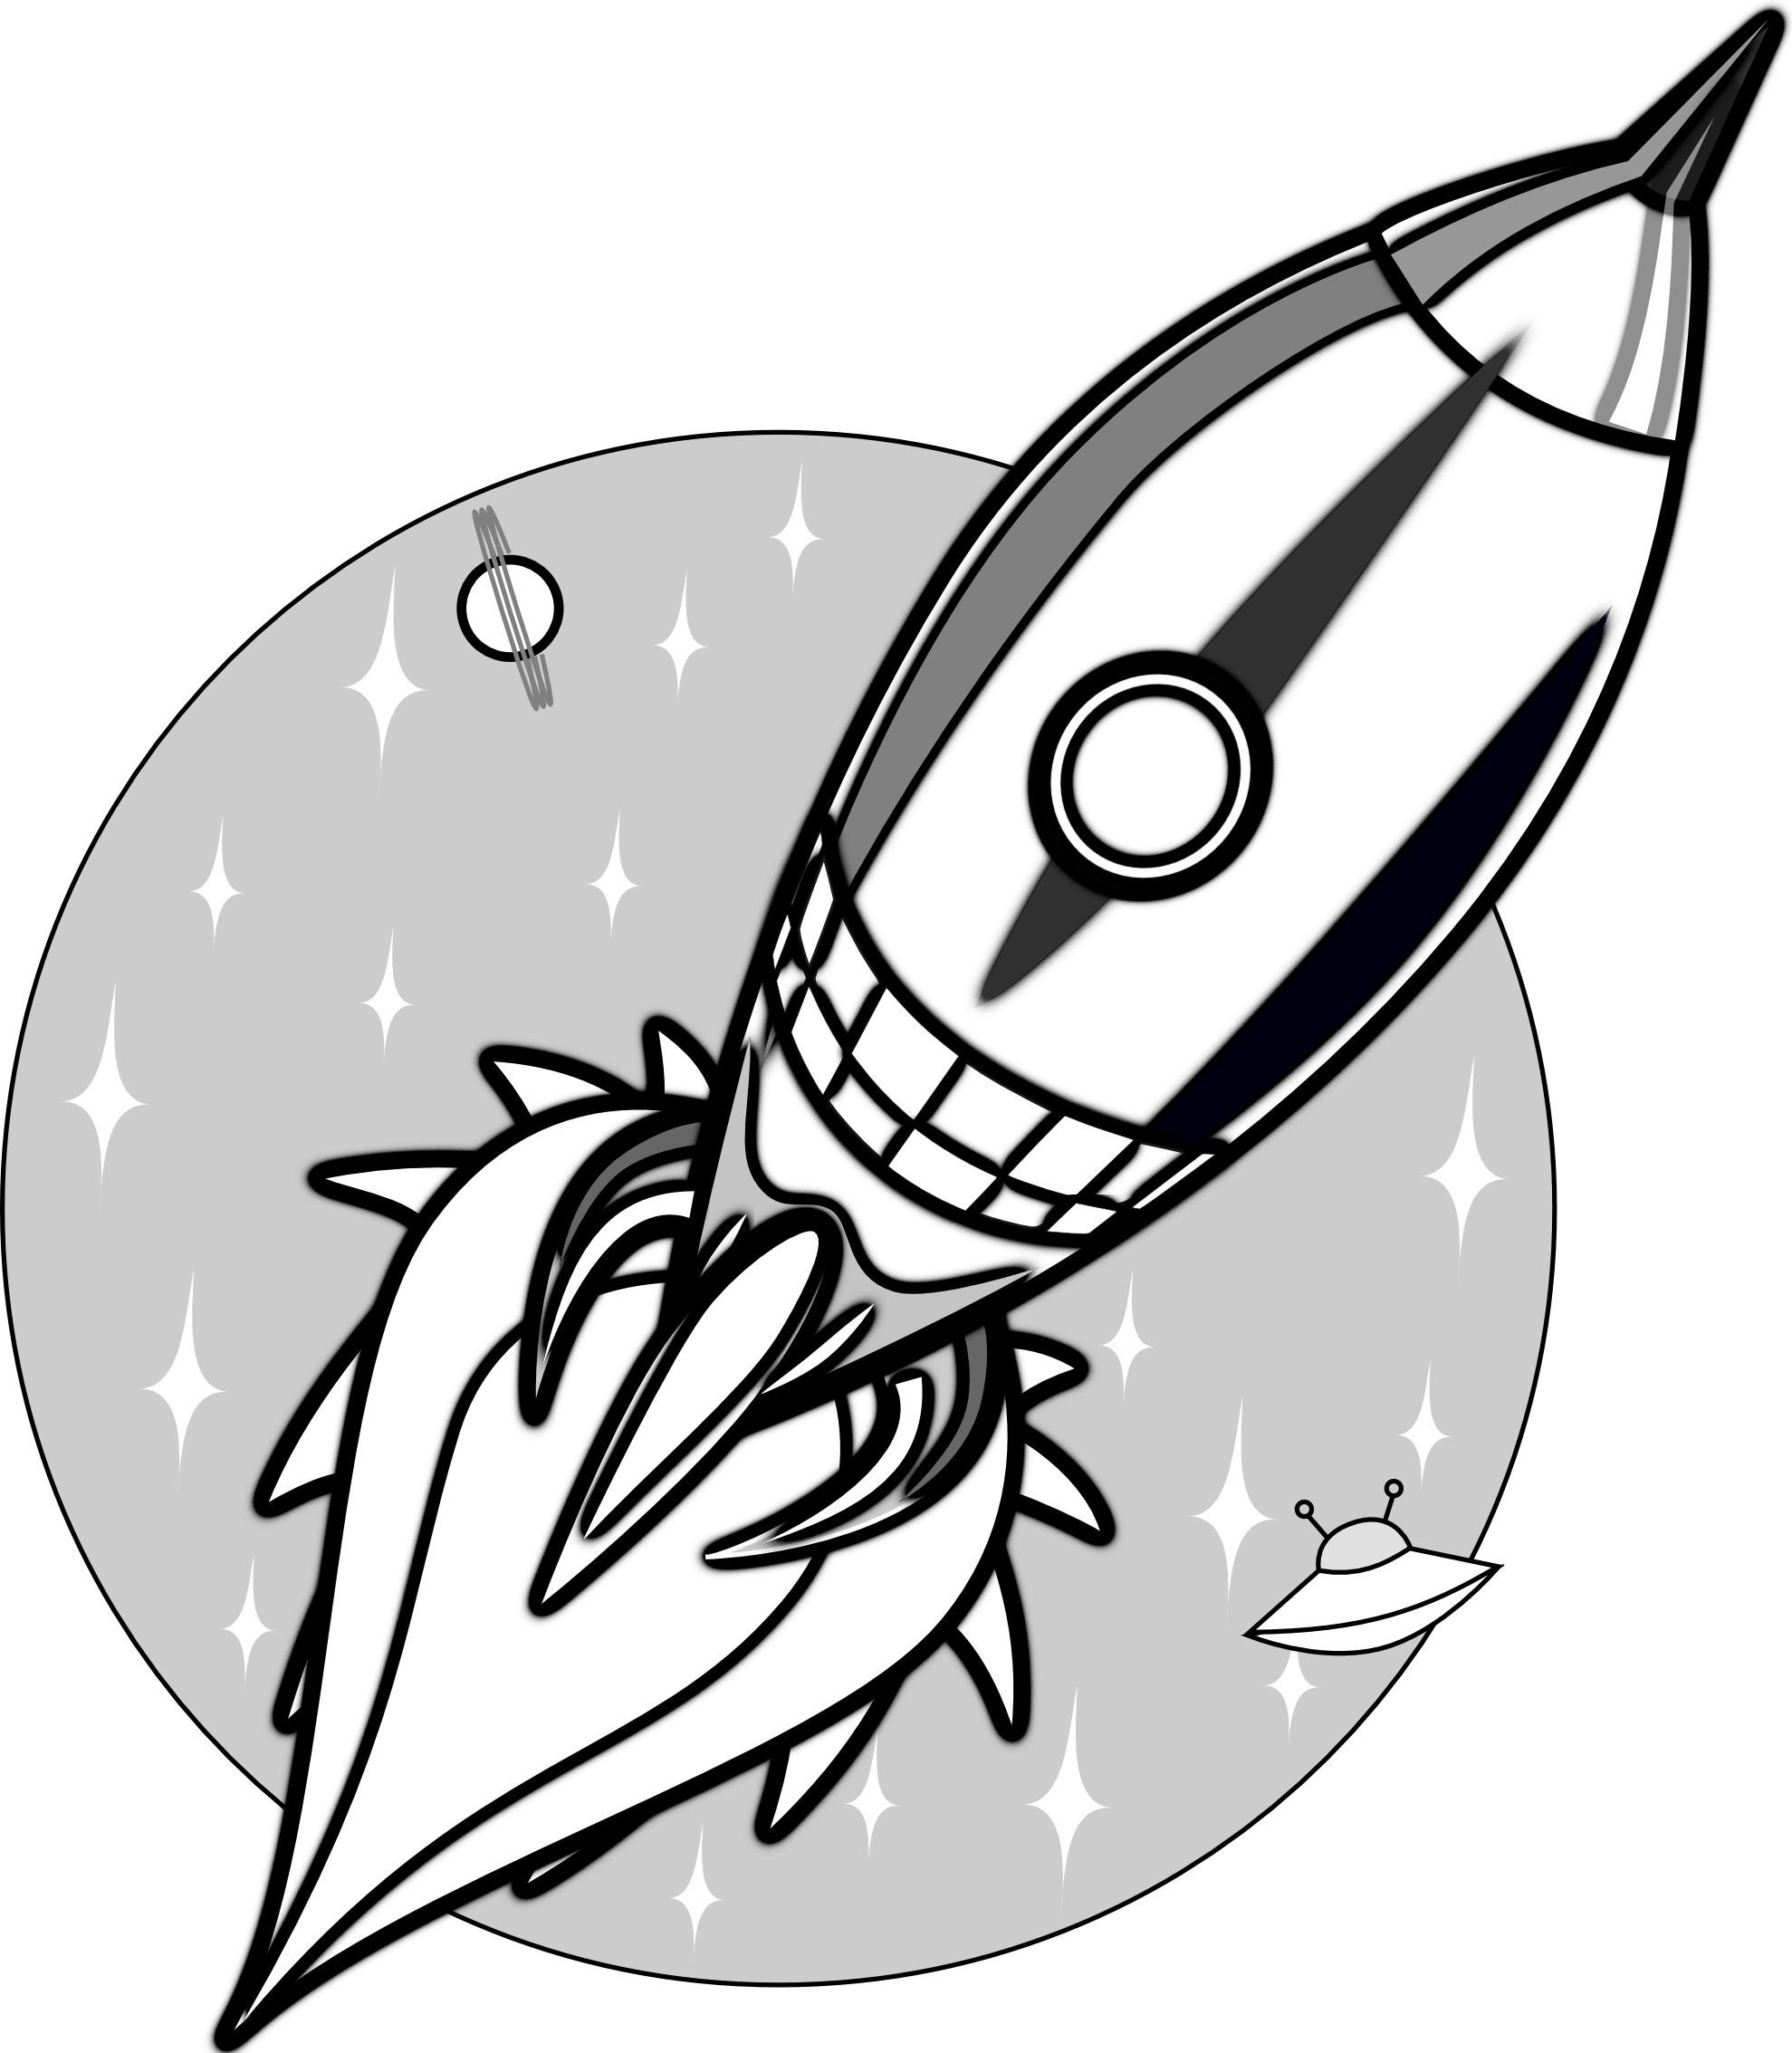 Rocket clipart black and white Clipart Black Images White Art